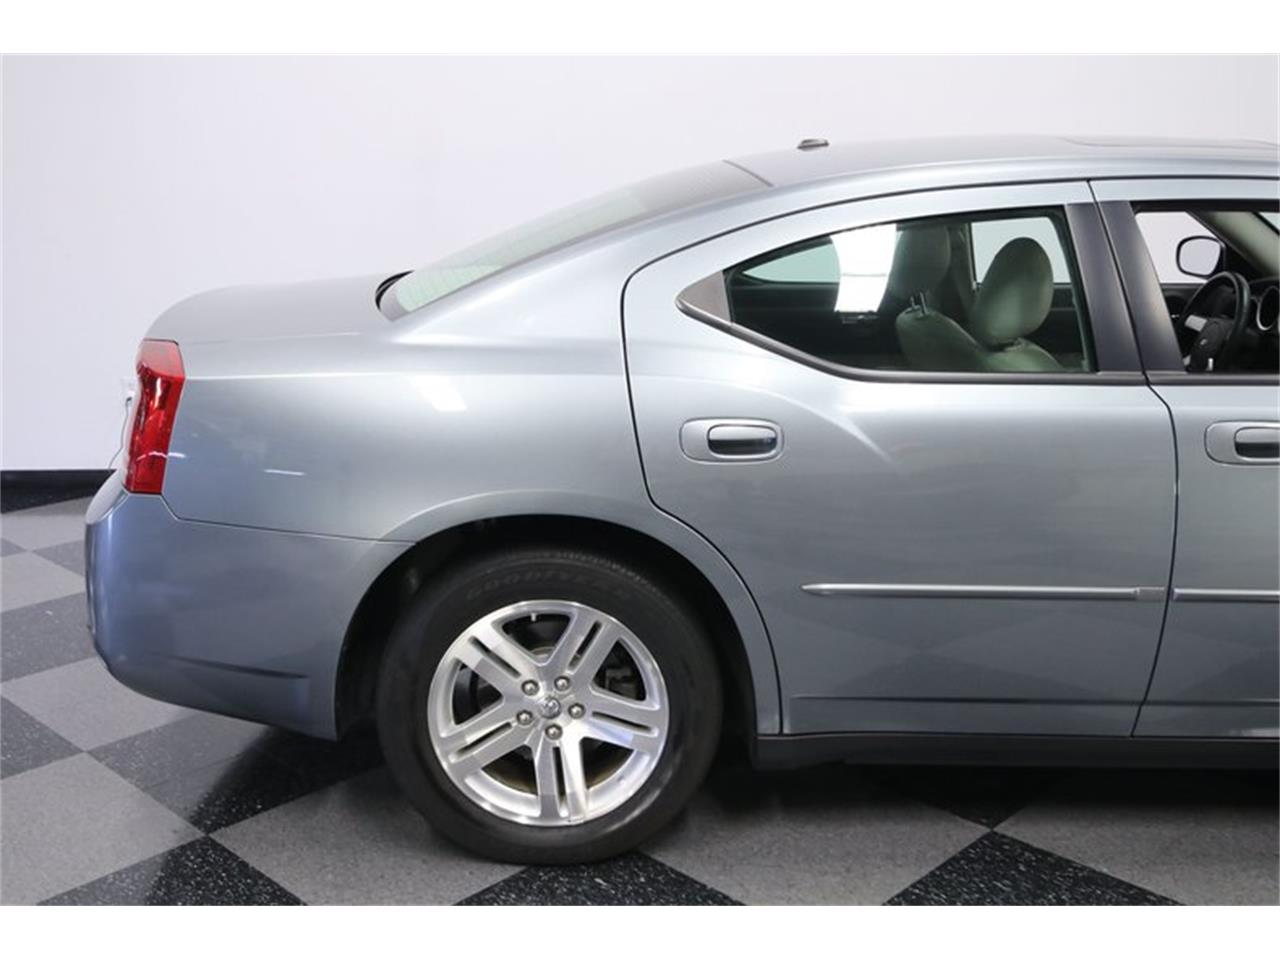 2007 Dodge Charger (CC-1379154) for sale in Lutz, Florida